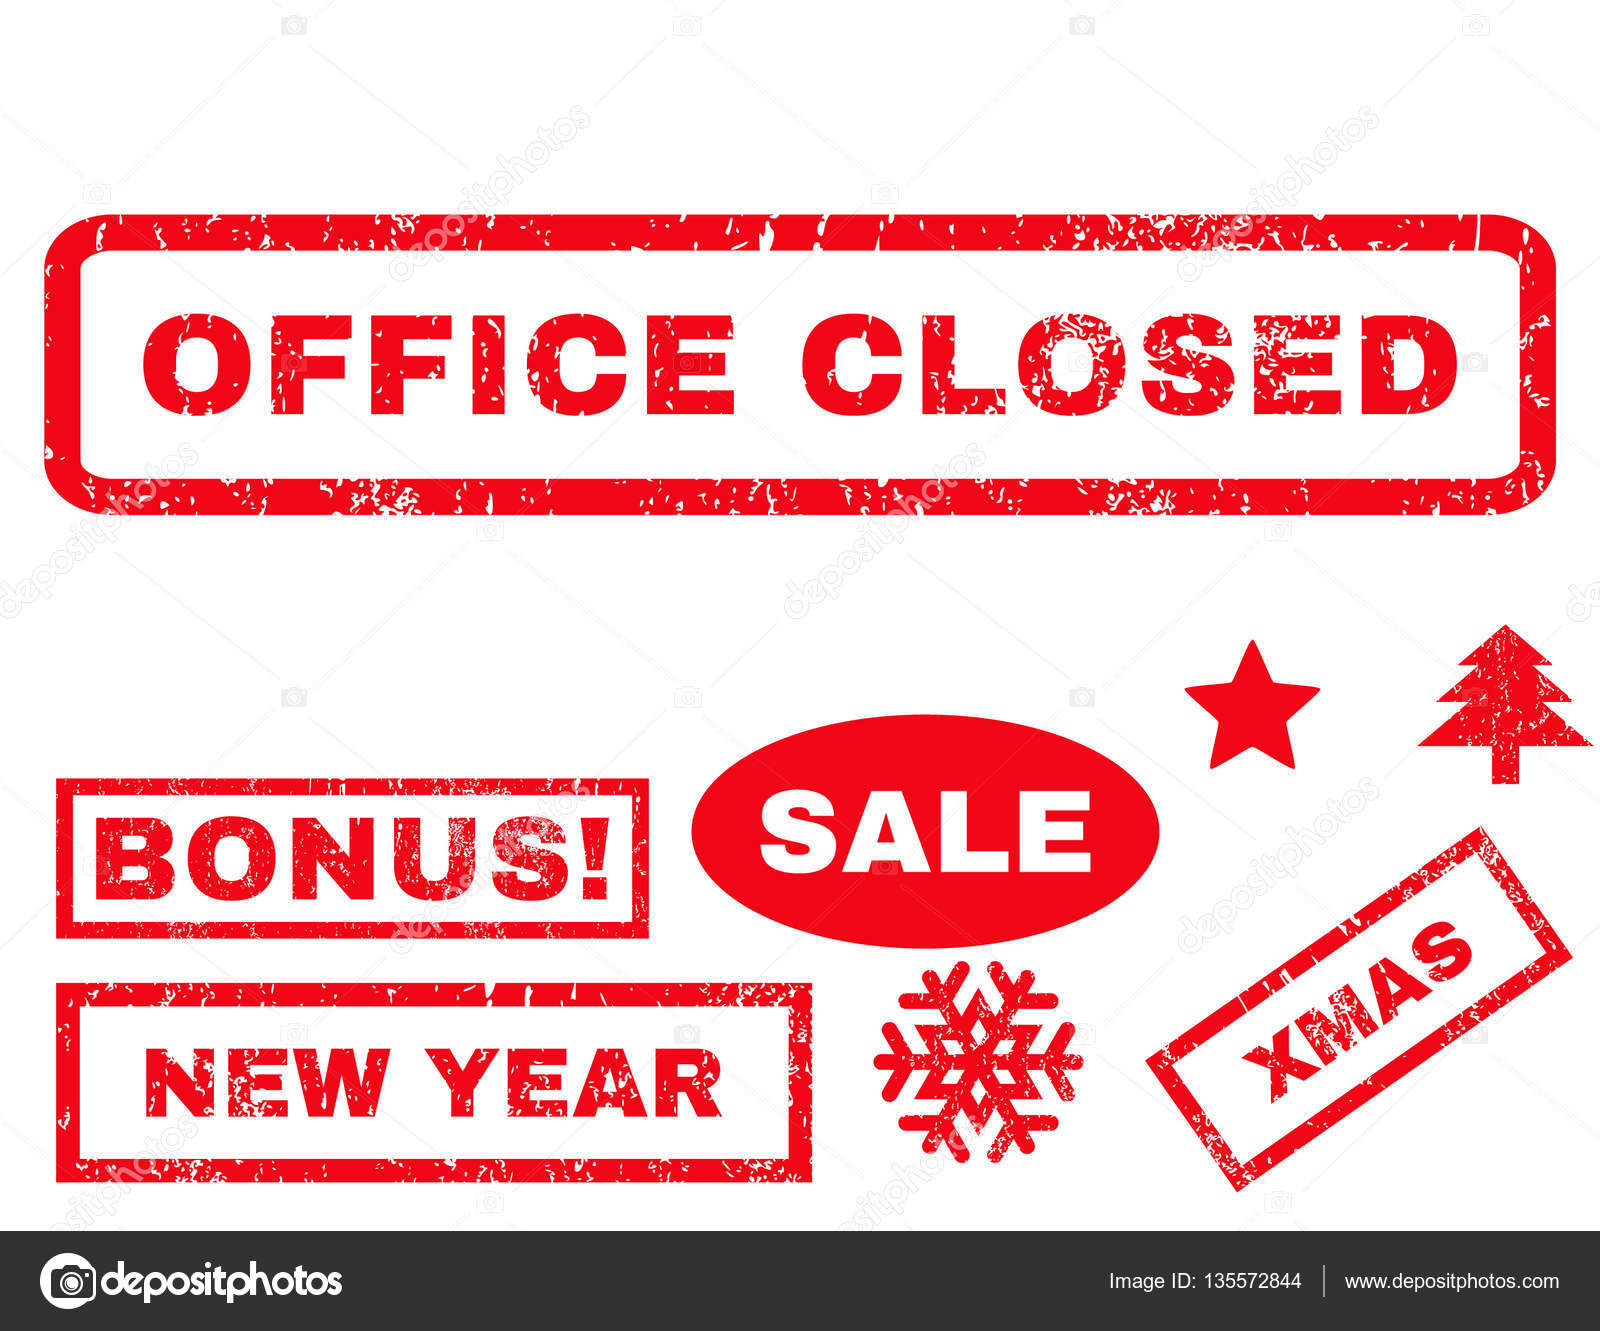 office closed rubber seal stamp watermark with additional images for christmas and new year sales tag inside rectangular banner with grunge design and